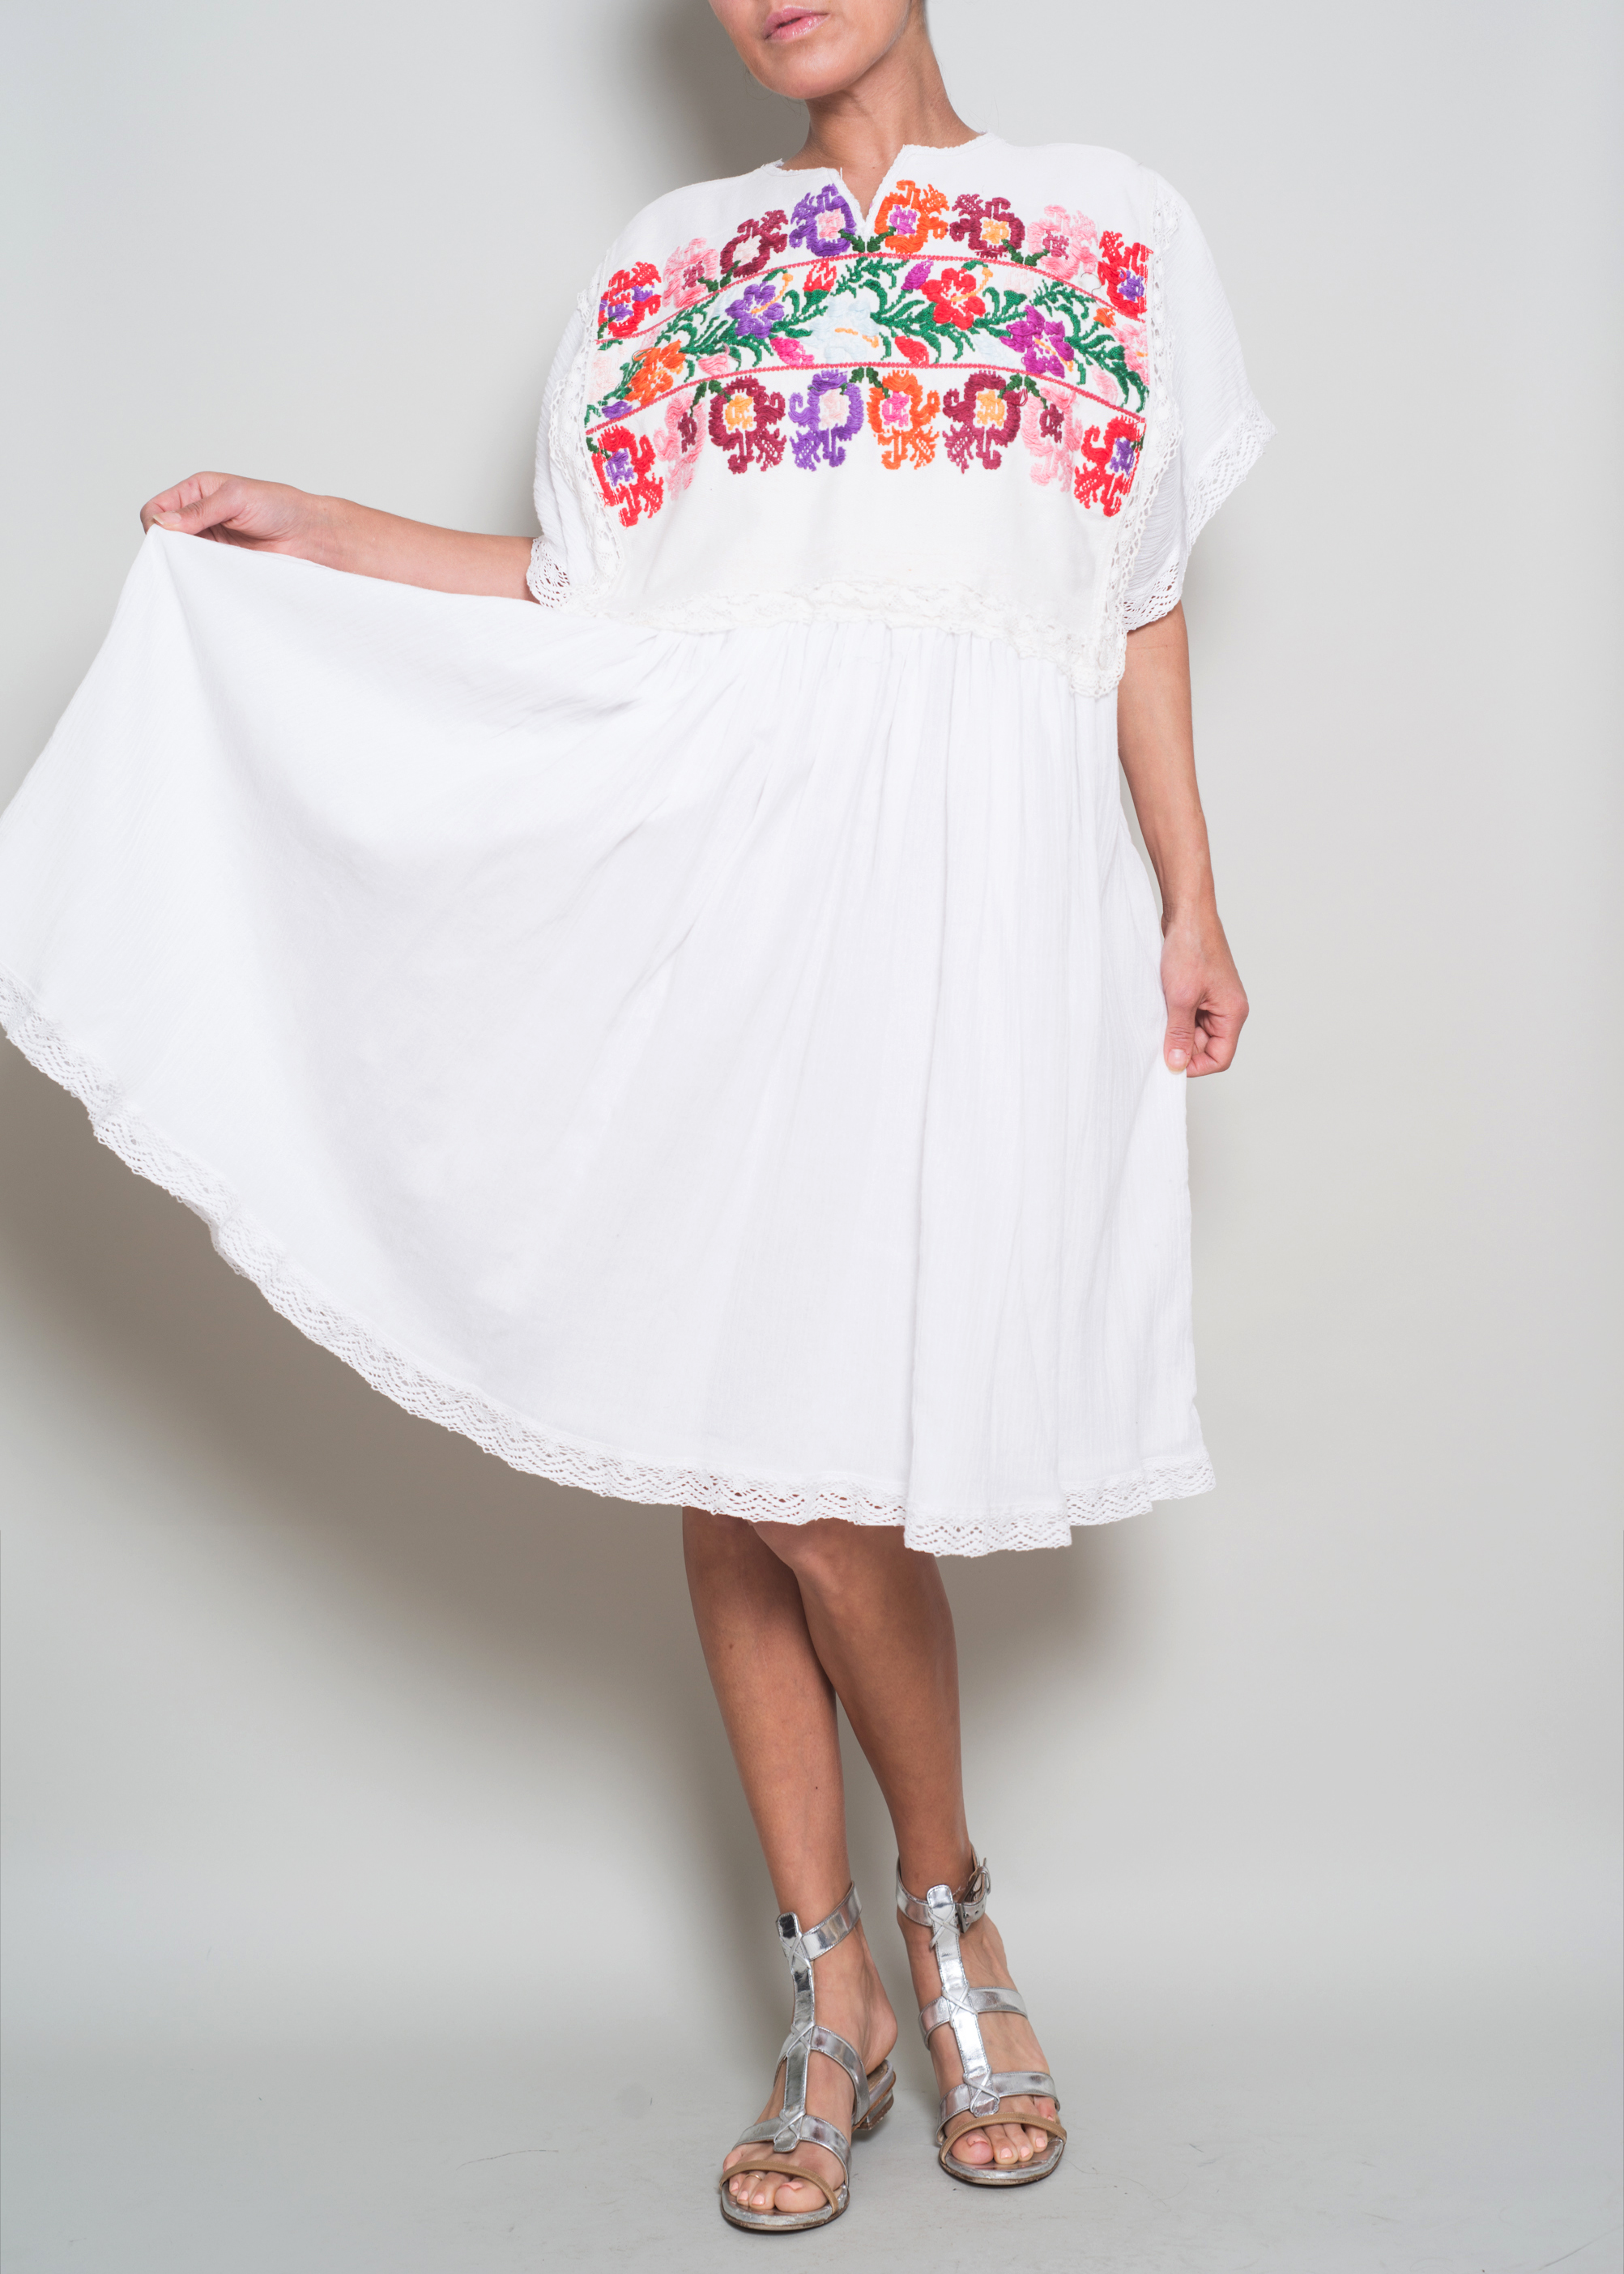 ELOUISE Bavarian Embroidery $265